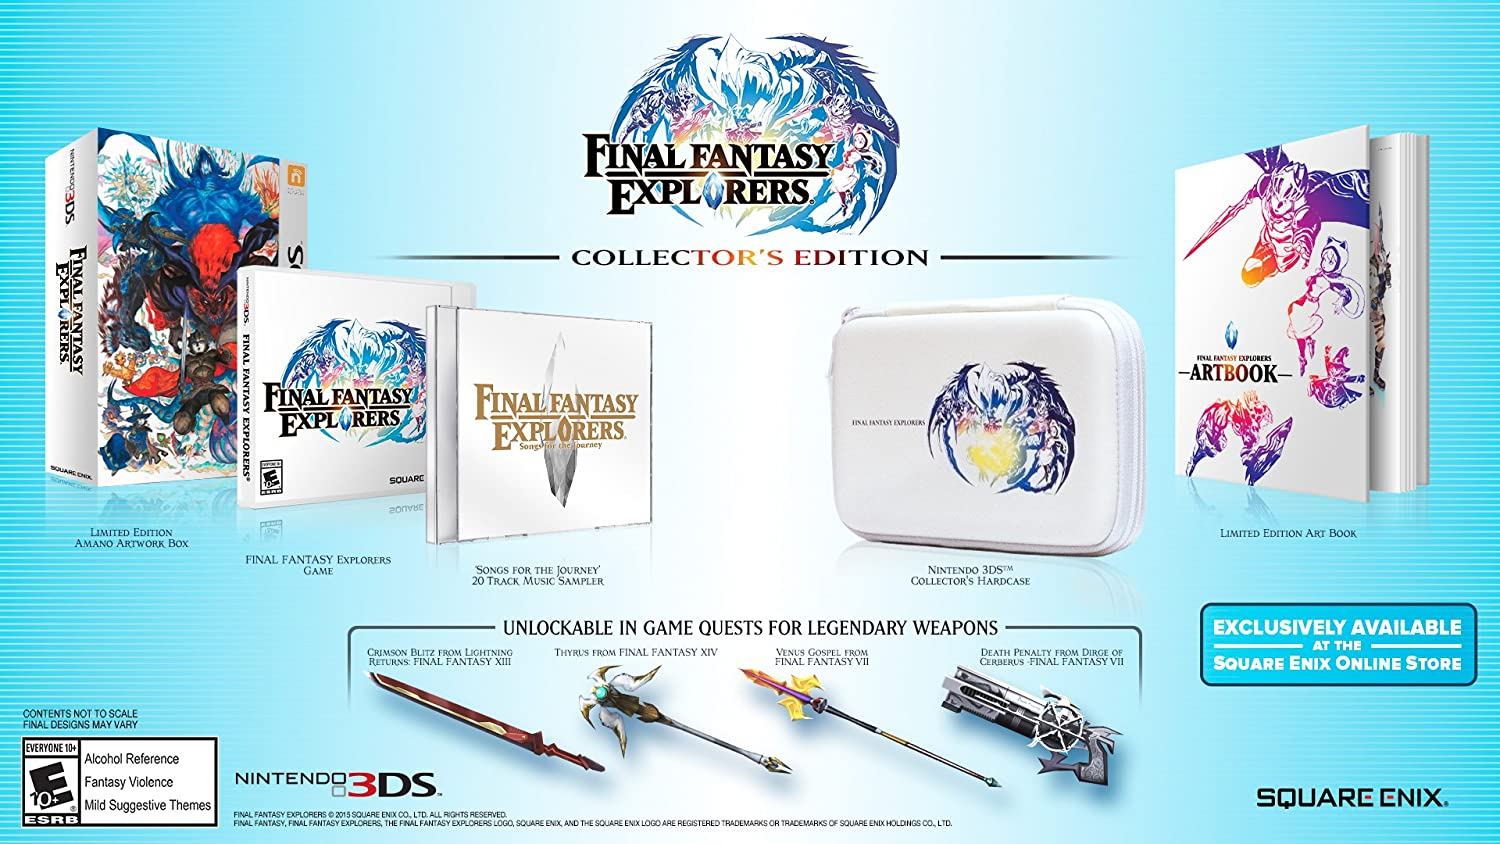 Amazoncom Final Fantasy Explorers Collectors Edition Nintendo - Create invoice app square enix online store